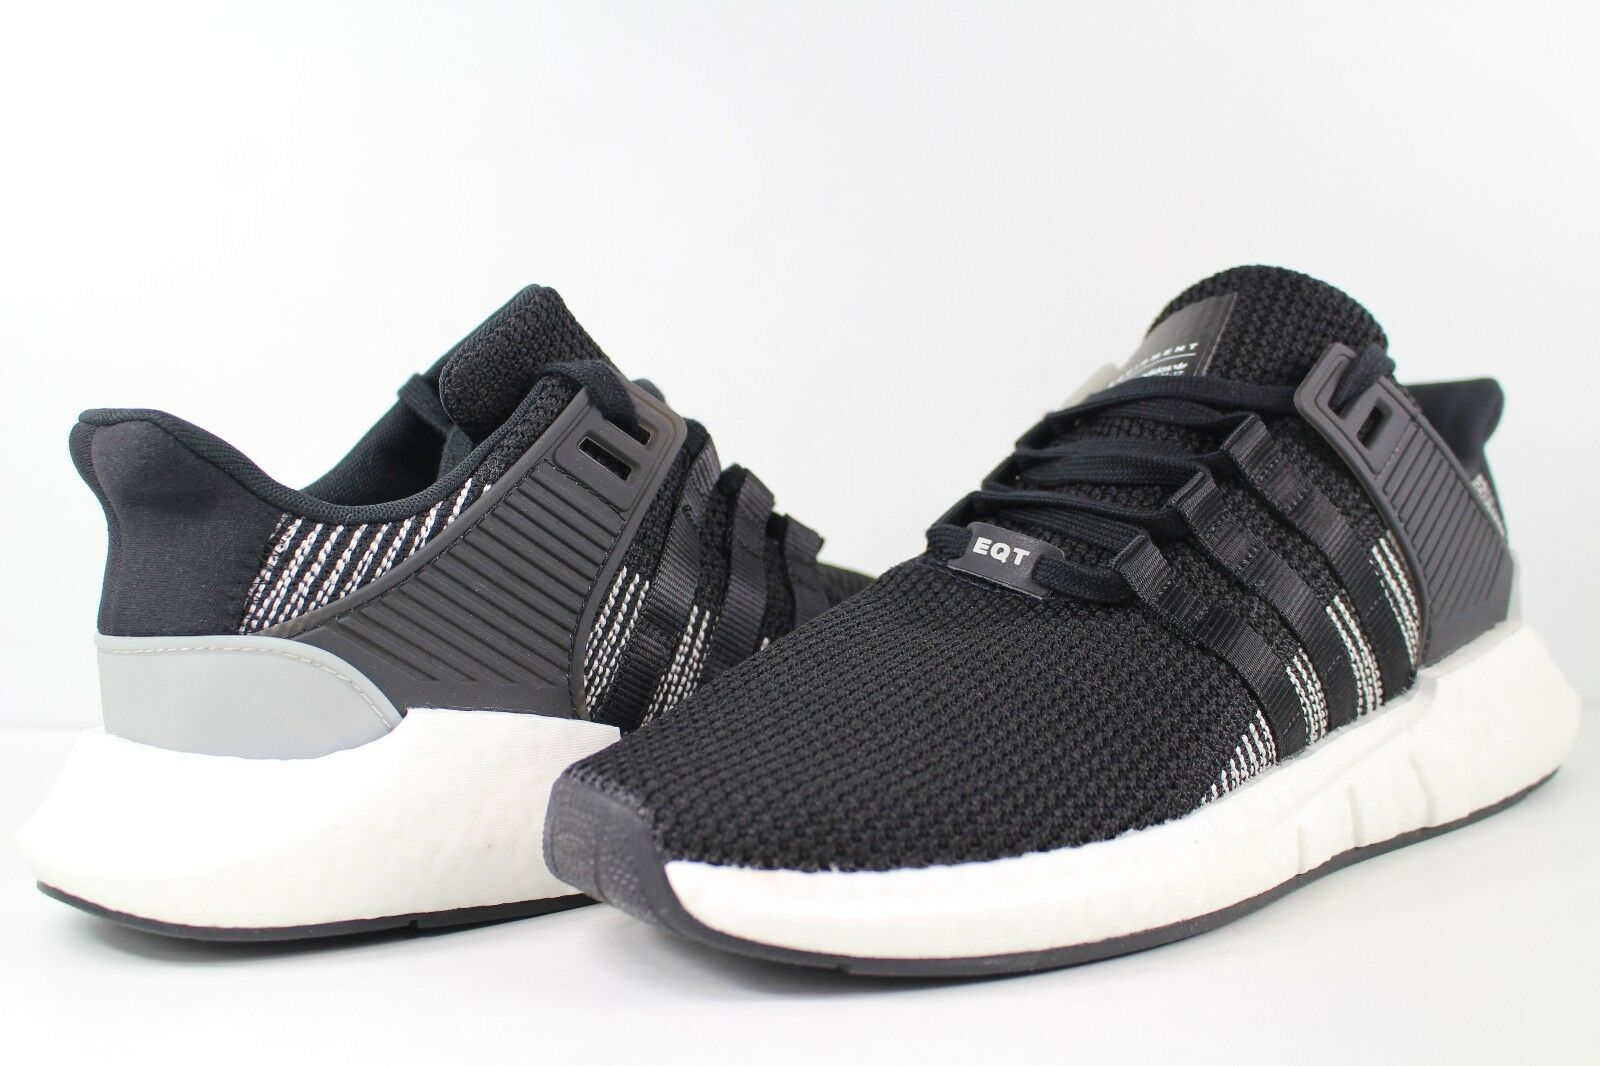 Adidas EQT Support 93 17 Boost Core Black White Size 12.5 BY9509 Equipment